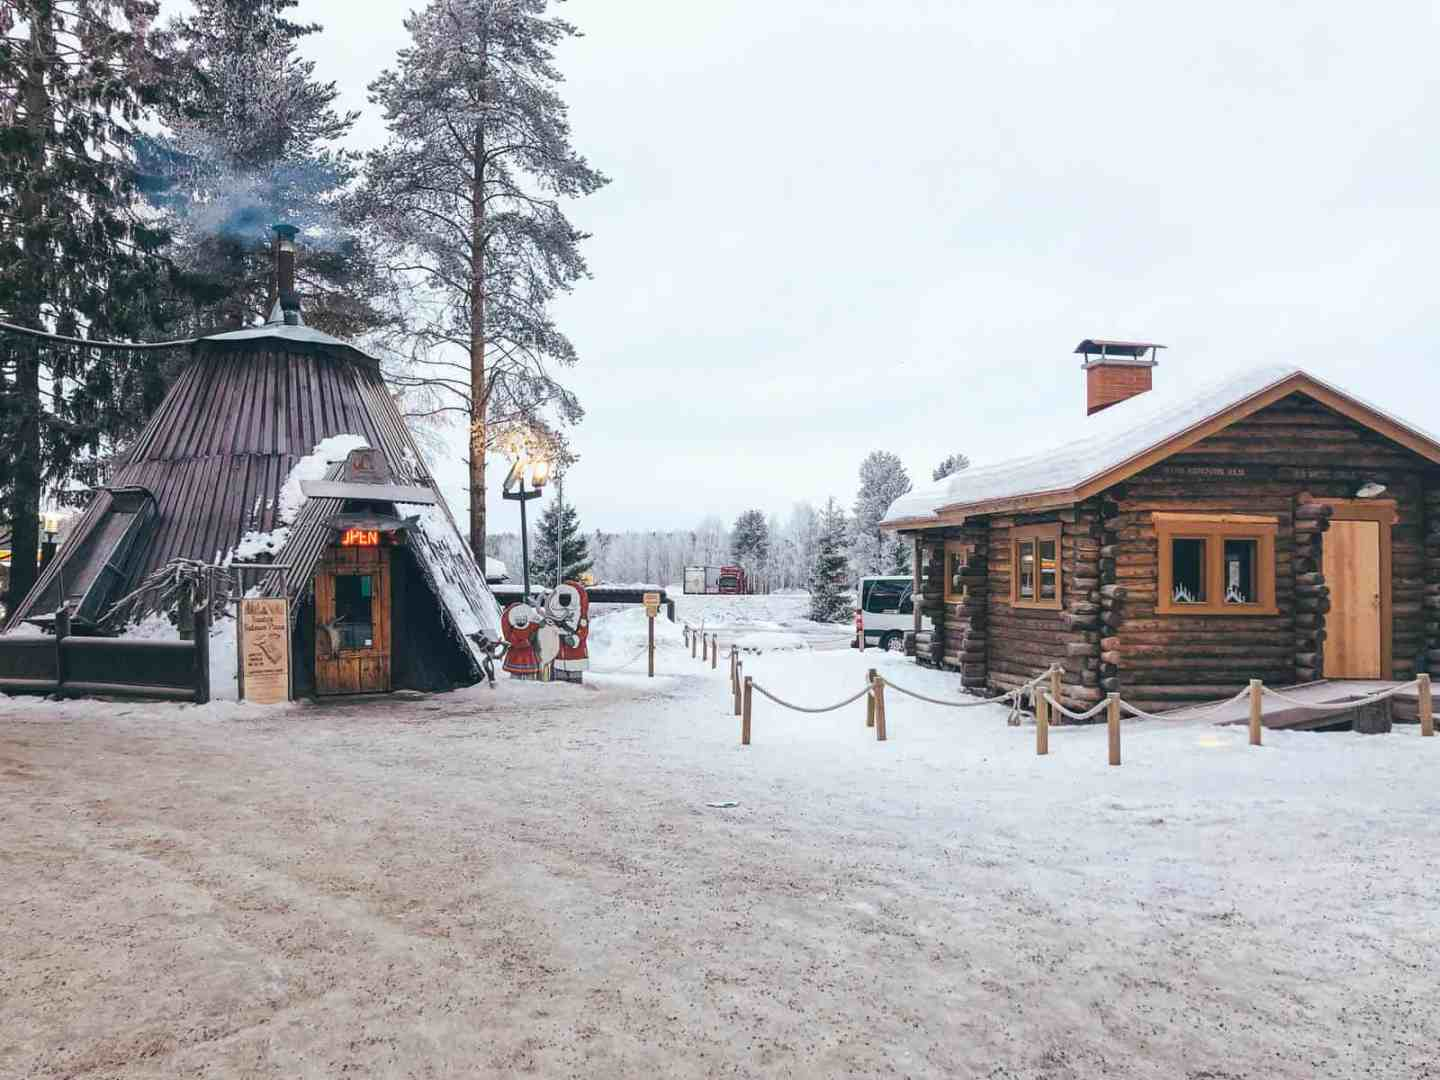 A traditional finish hut next to a log cabin